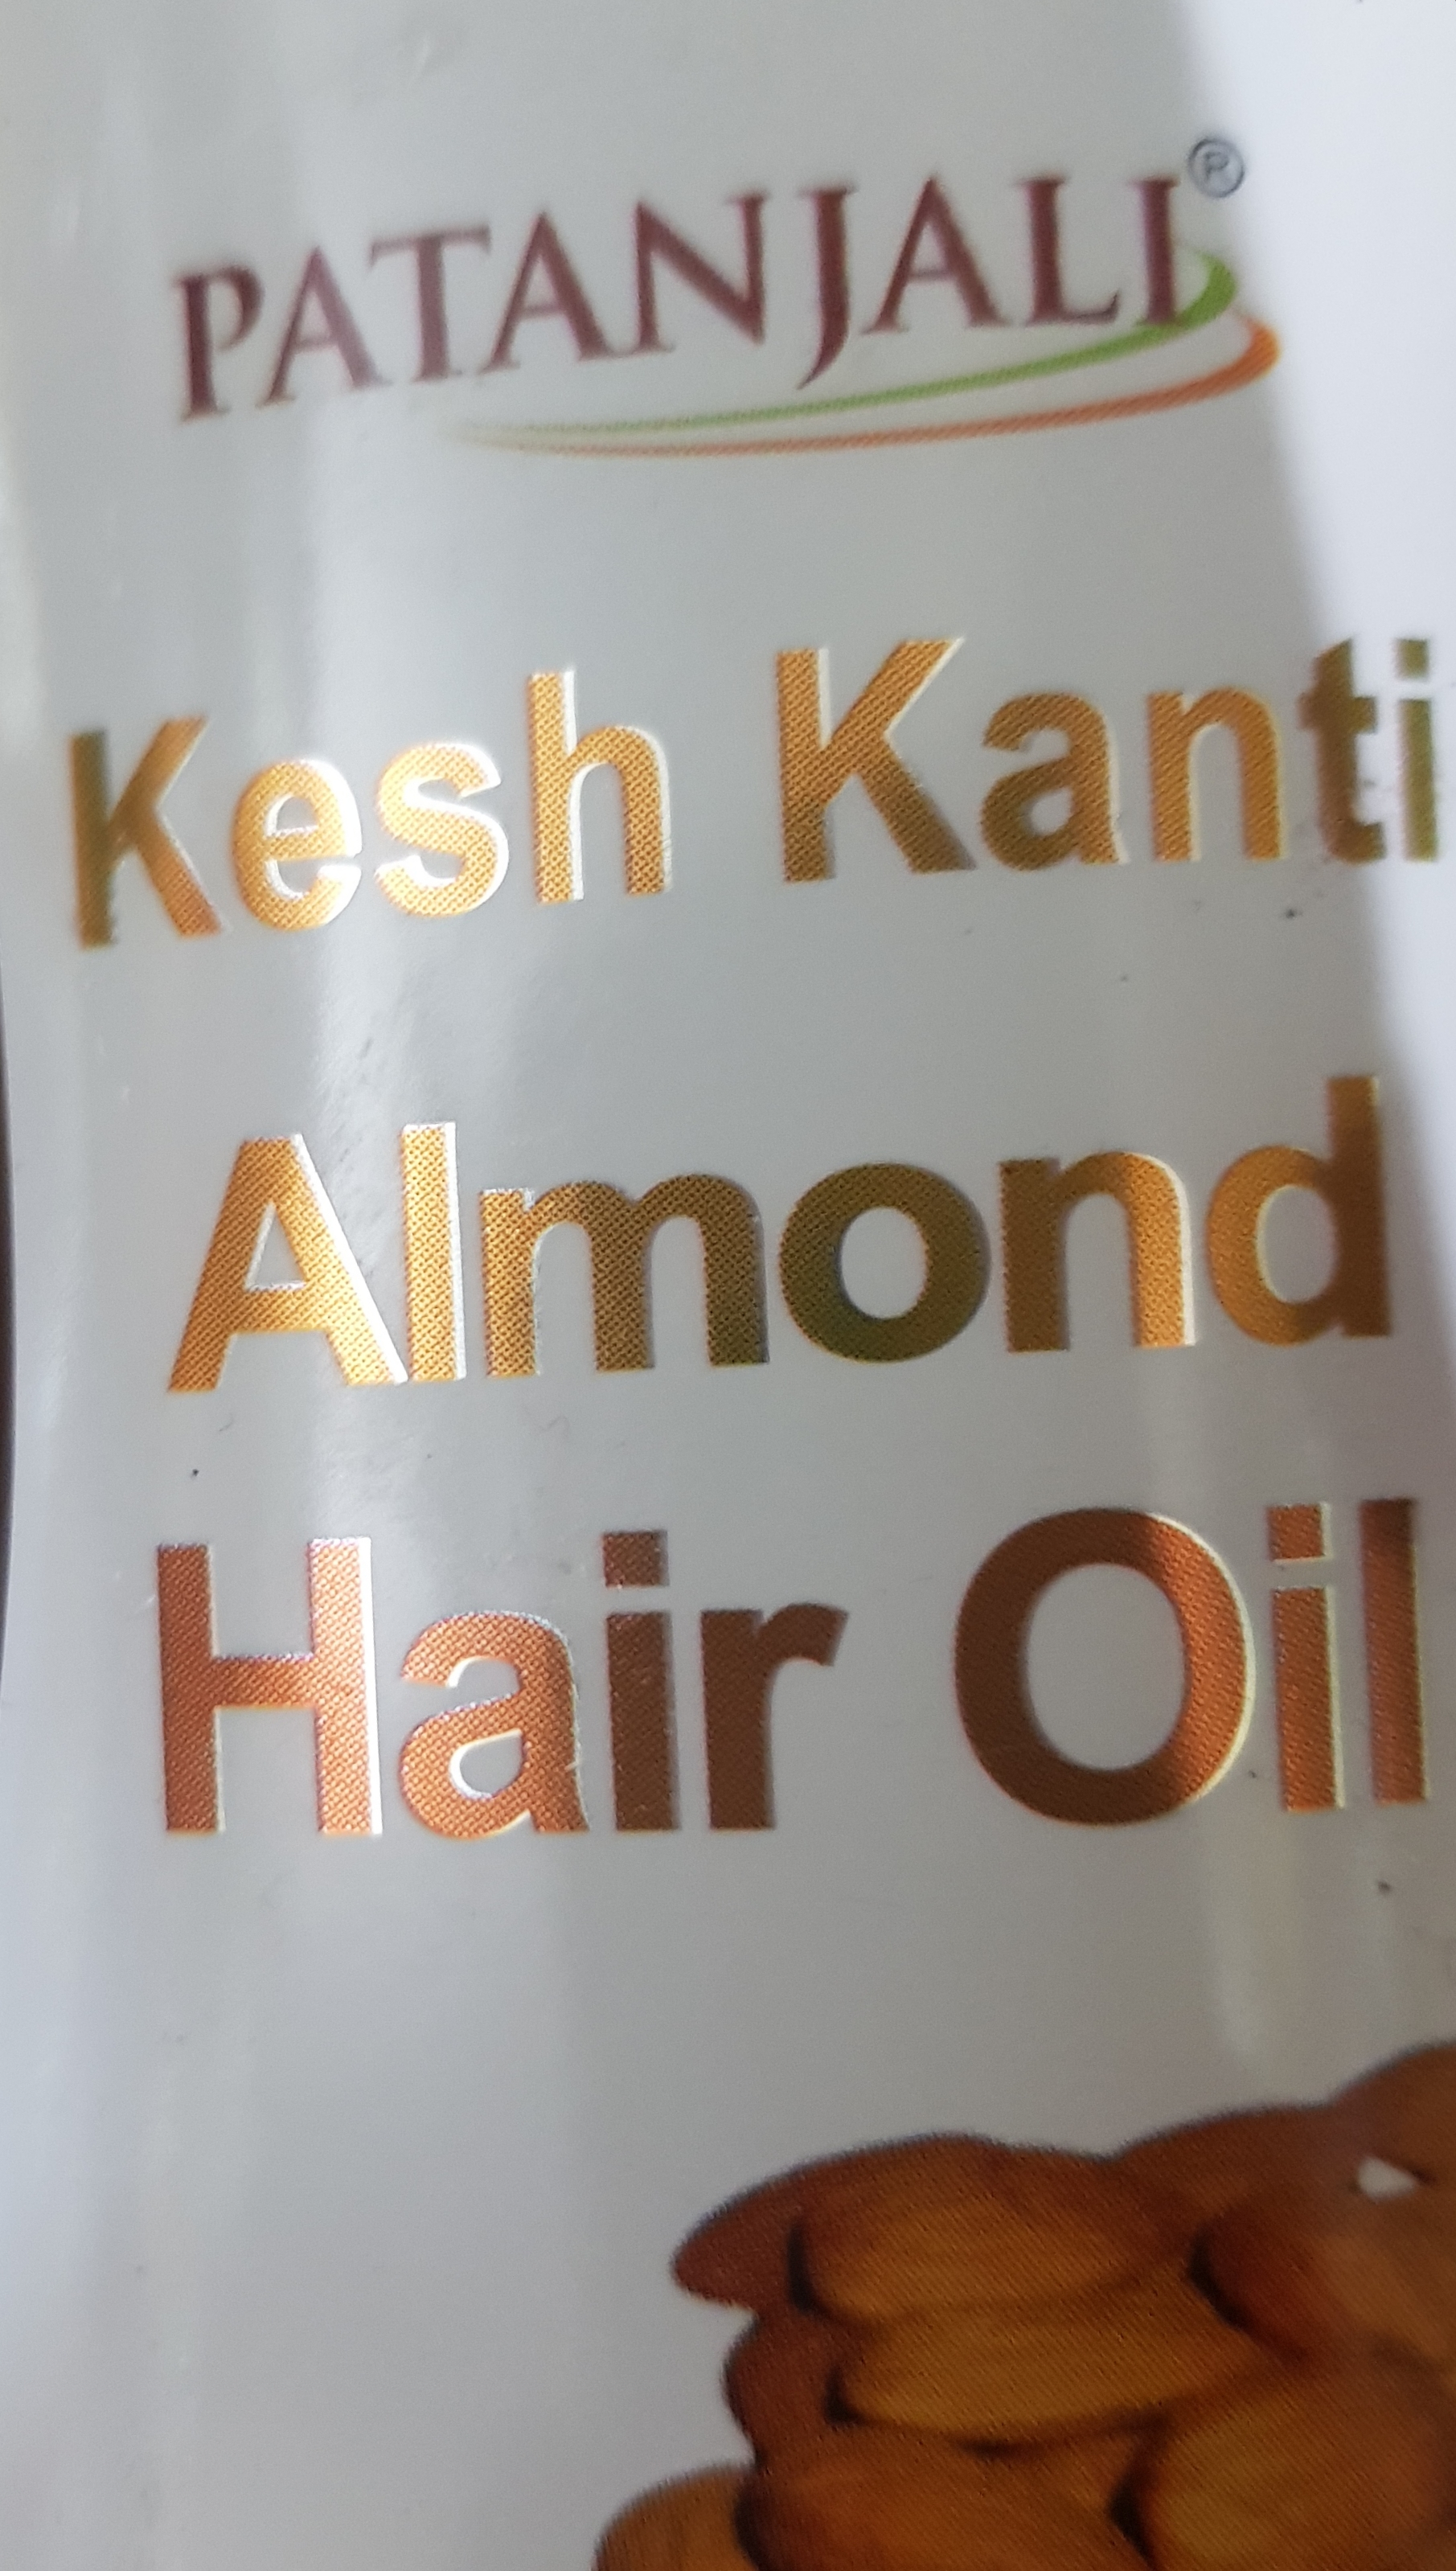 Patanjali Kesh Kanti Almond Hair Oil-Great-By pogostylecase